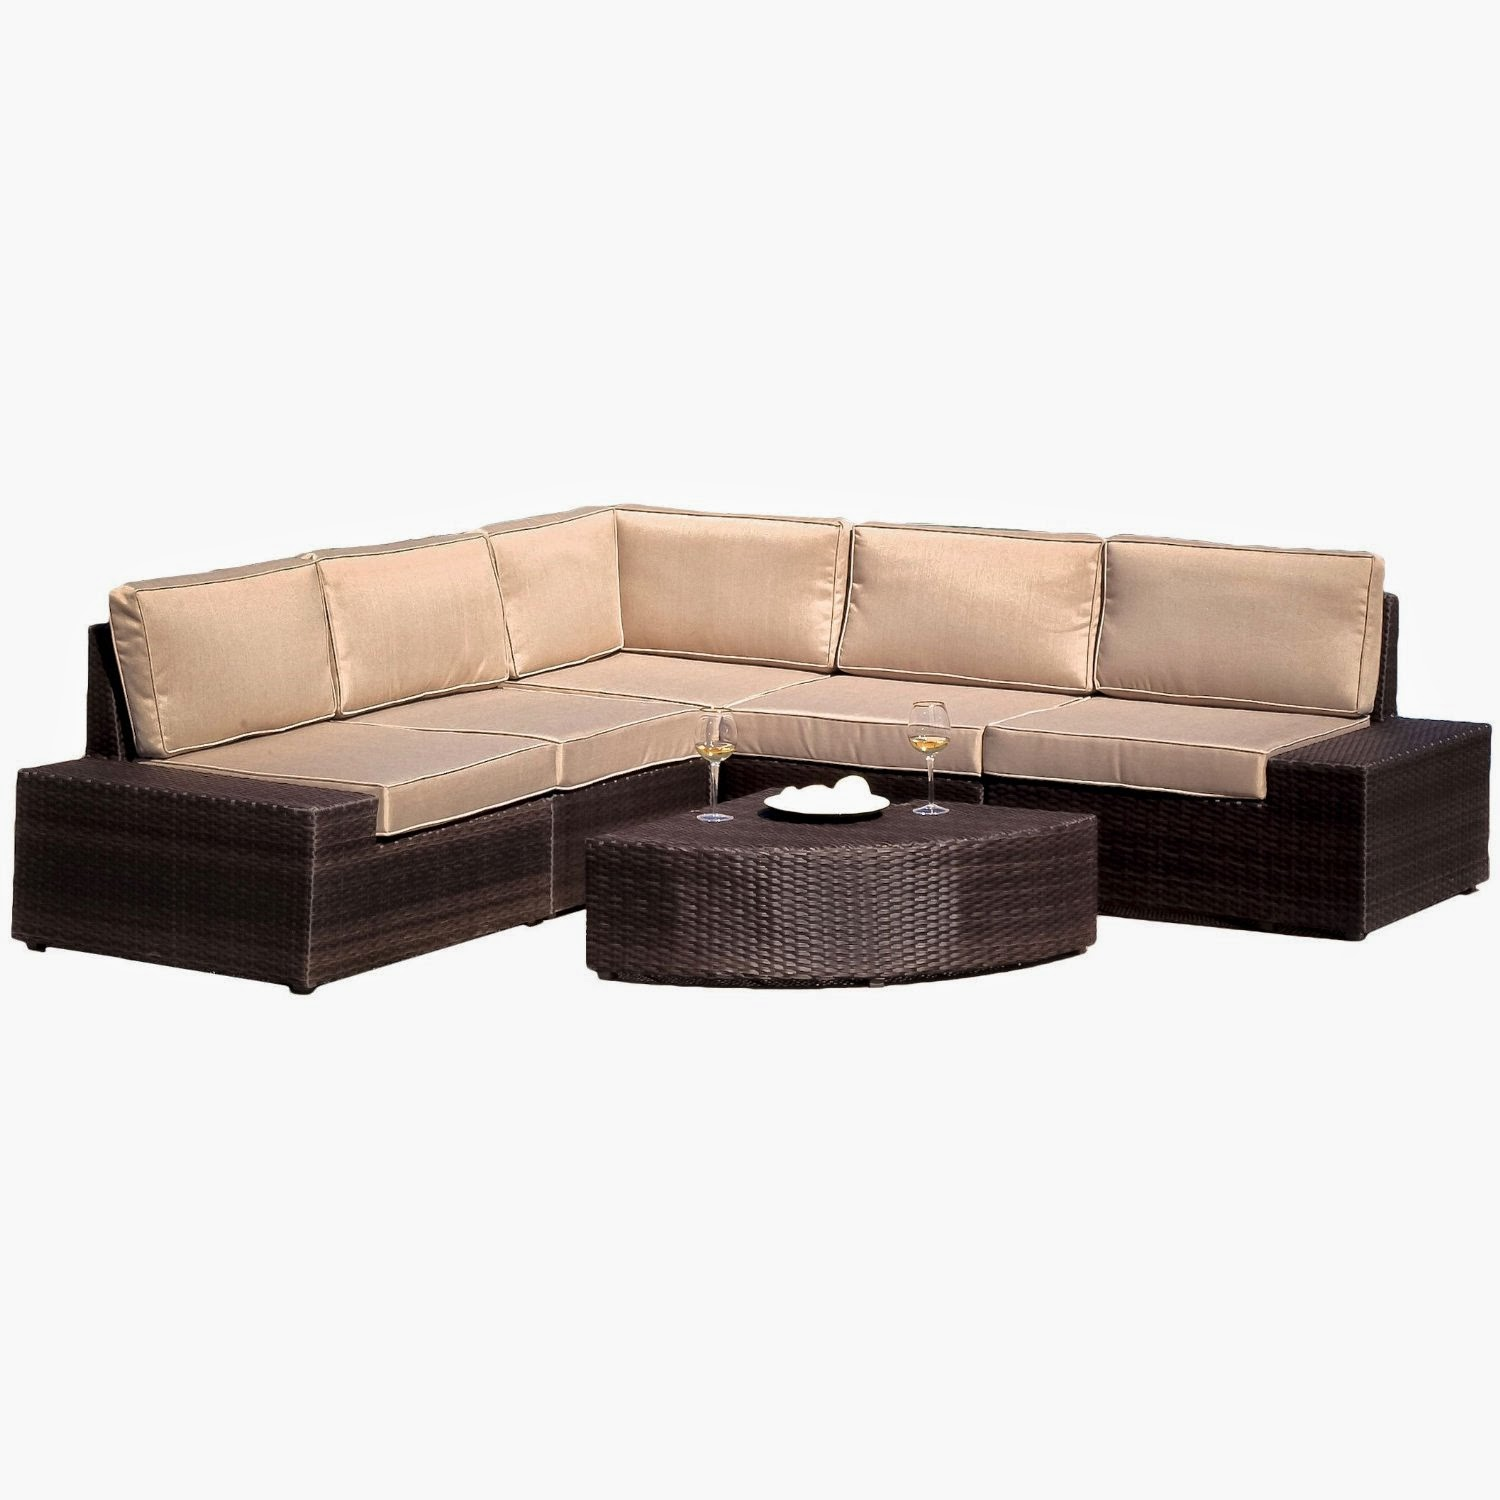 how to sell used sofa scandinavian style uk best selling say brook pe wicker set outdoor patio